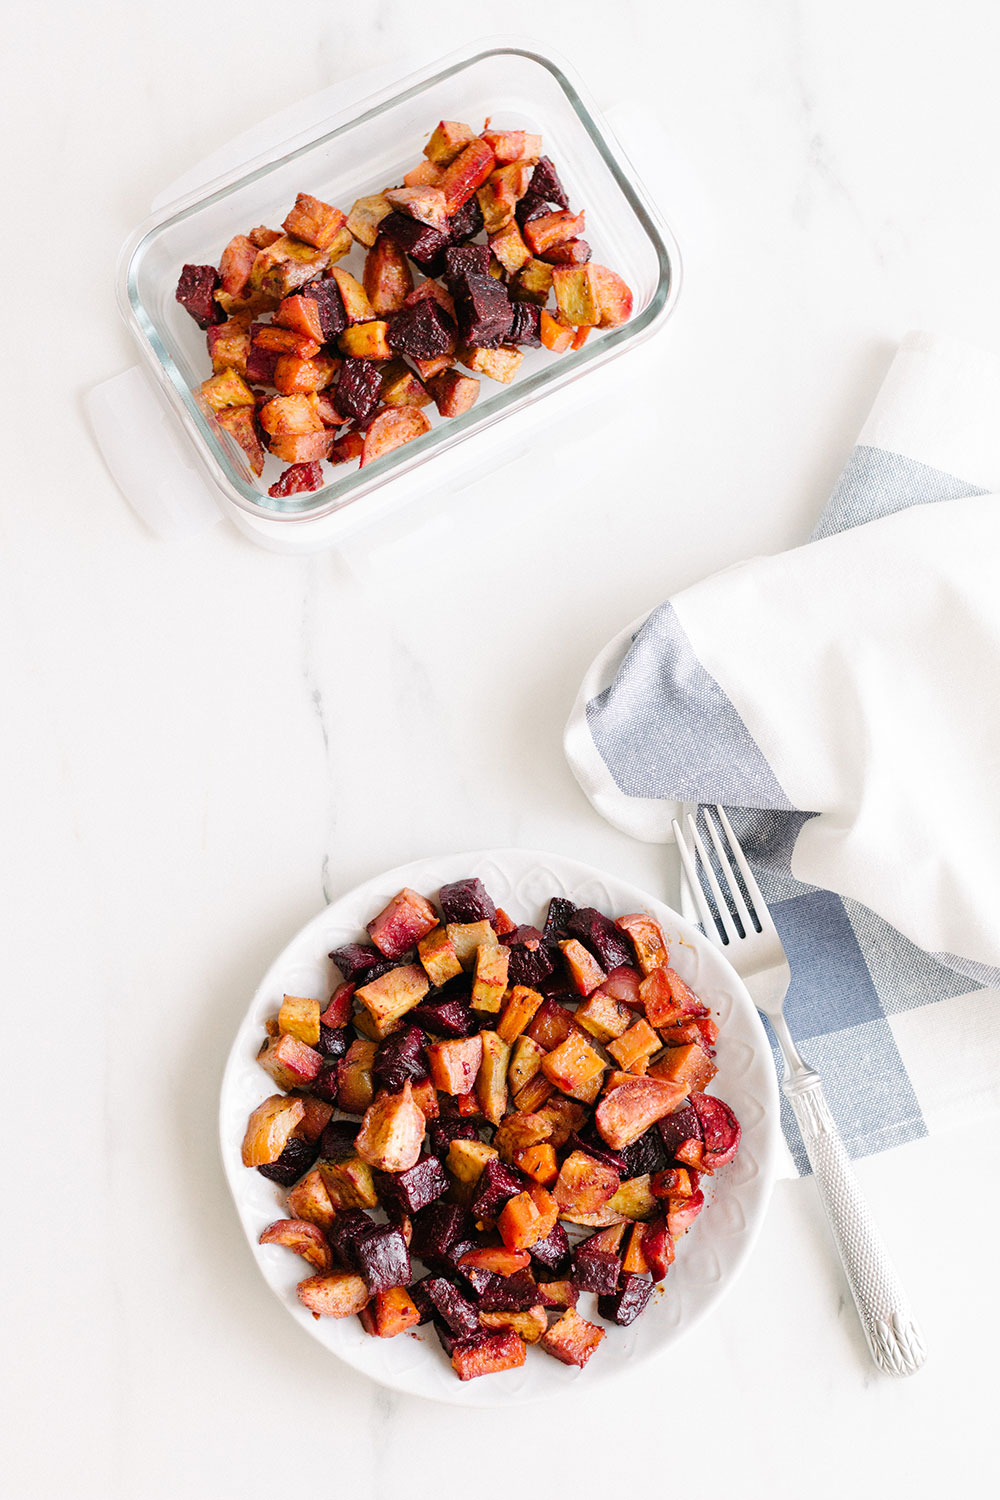 Oven Roasted Root Vegetables Recipe: A healthier and nutrient-rich alternative to classic roast potatoes. https://www.spotebi.com/recipes/oven-roasted-root-vegetables/